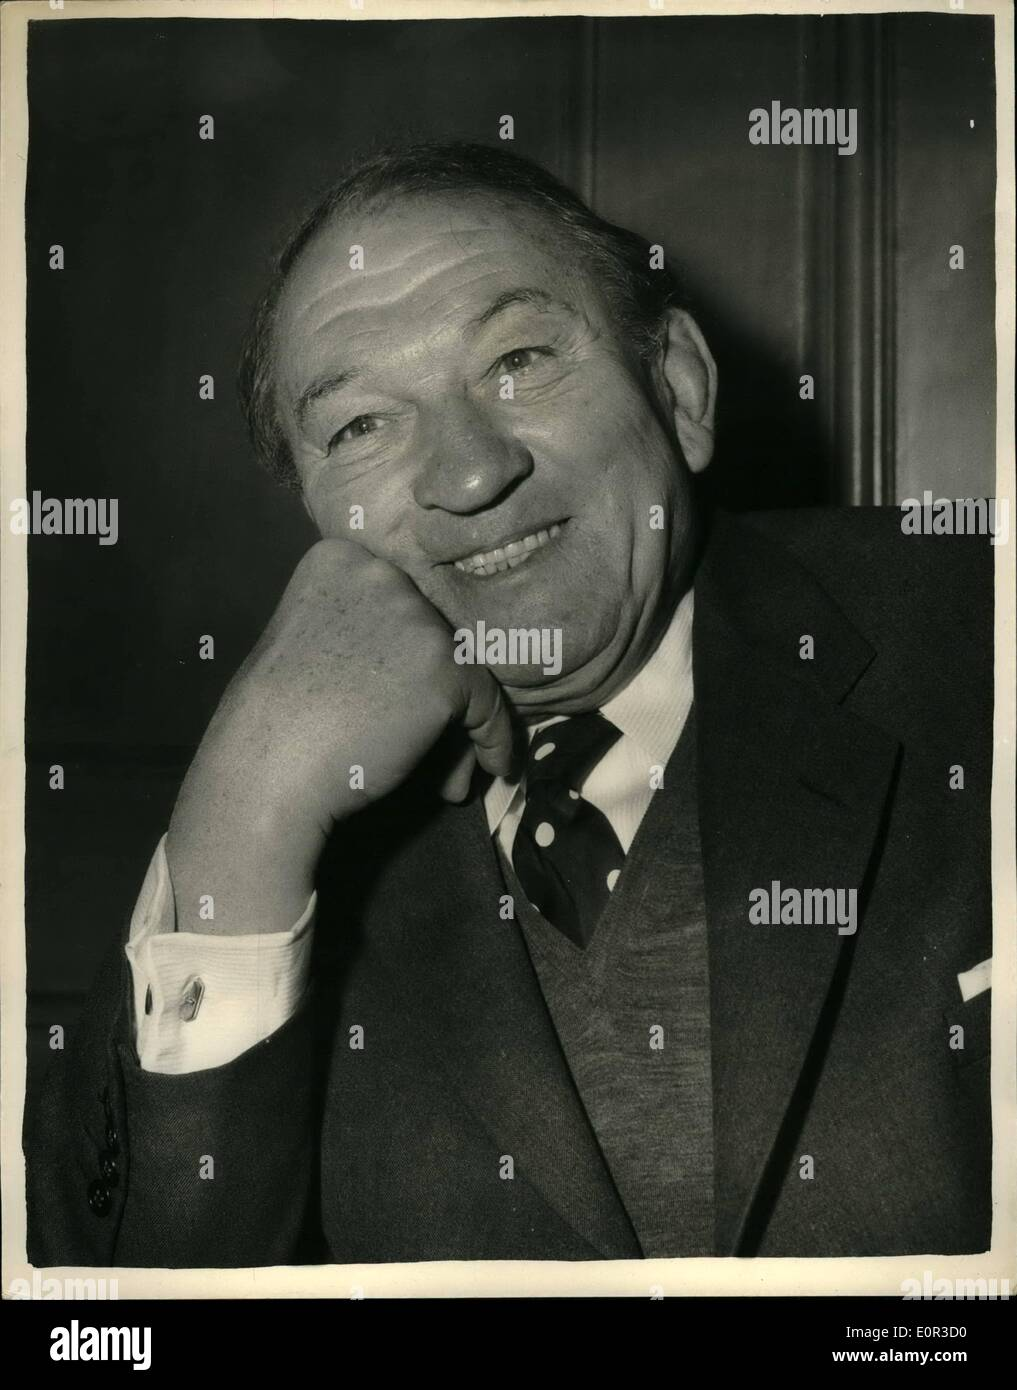 Jan. 01, 1958 - Popular Pre war in London. Victor McLaglen prepares for New film. Photo shows Victor McLaglen the popular star of pre war days when at the savoy Hotel this evening. He is here to star in the new film ''Sea Fury'' with Italian starist Buciana Paoluzzi. - Stock Image